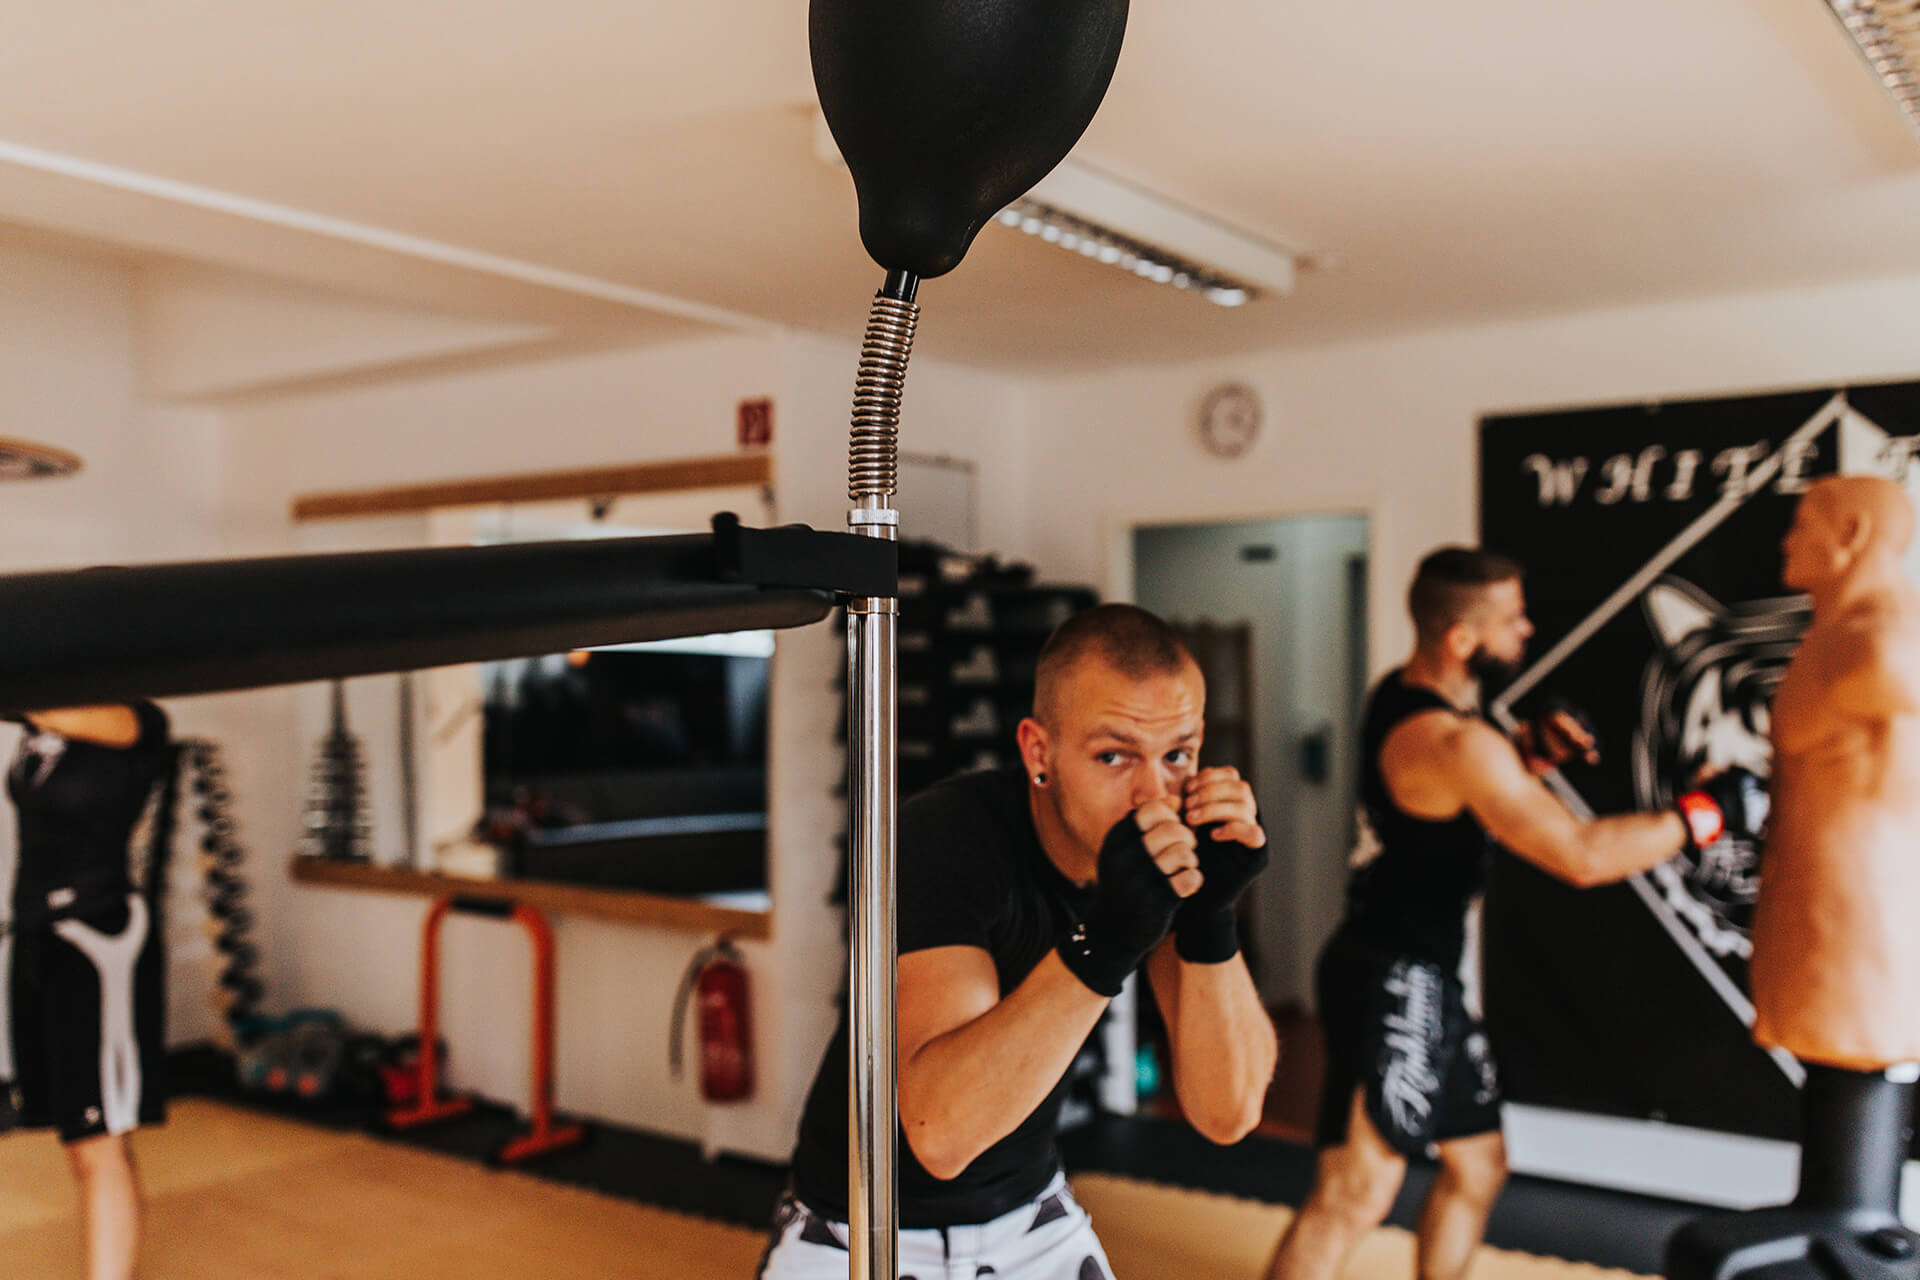 White Tiger Revolution Kurse Fitness-Boxing